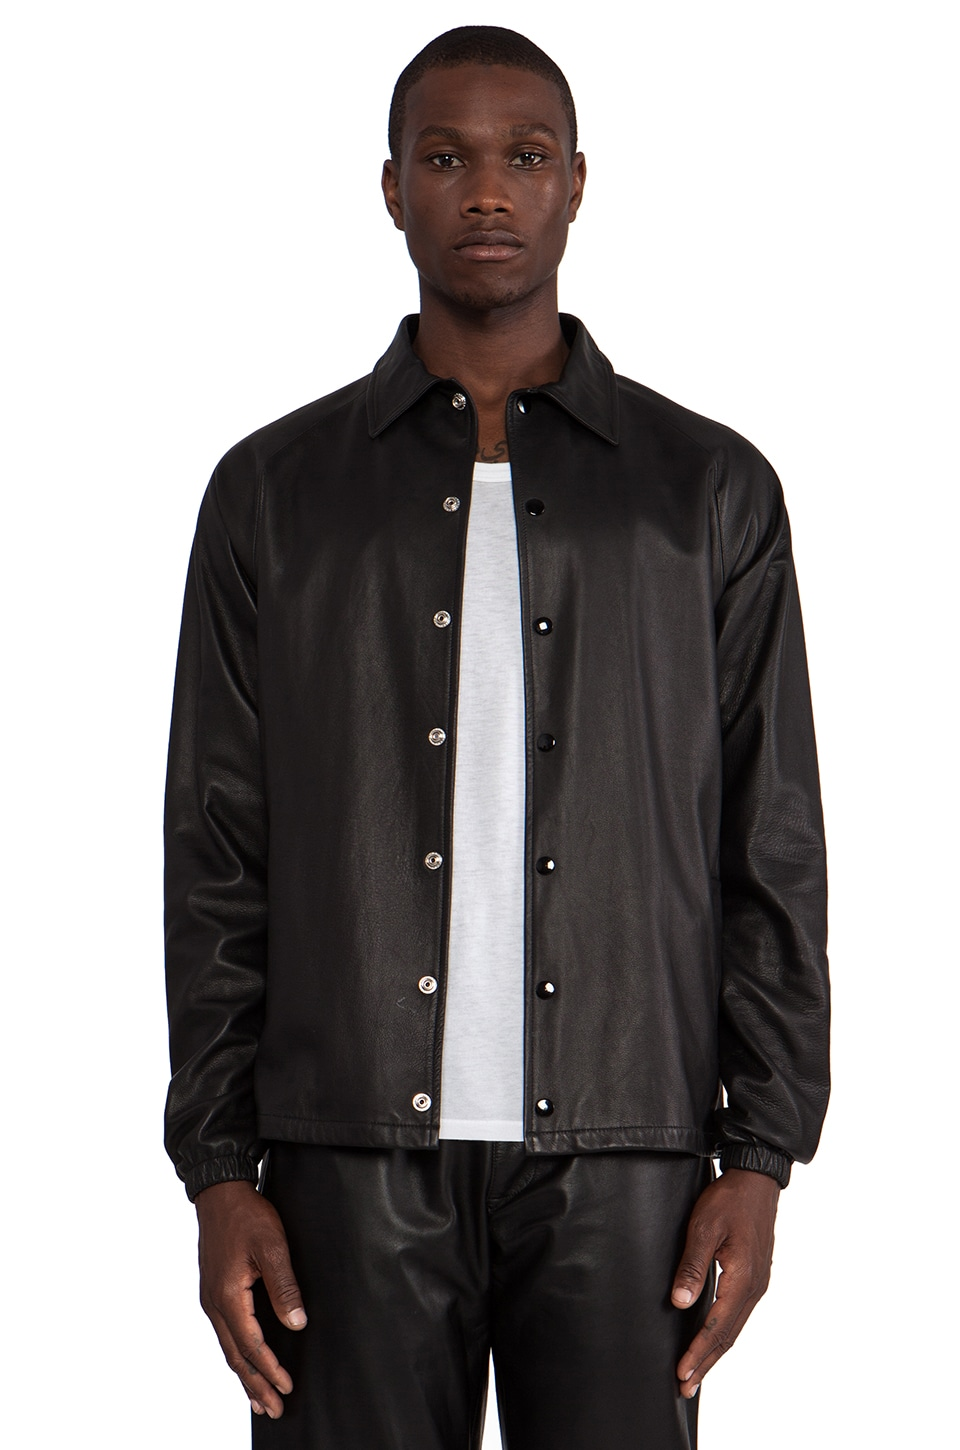 Laer Coaches Lambskin Jacket in Black